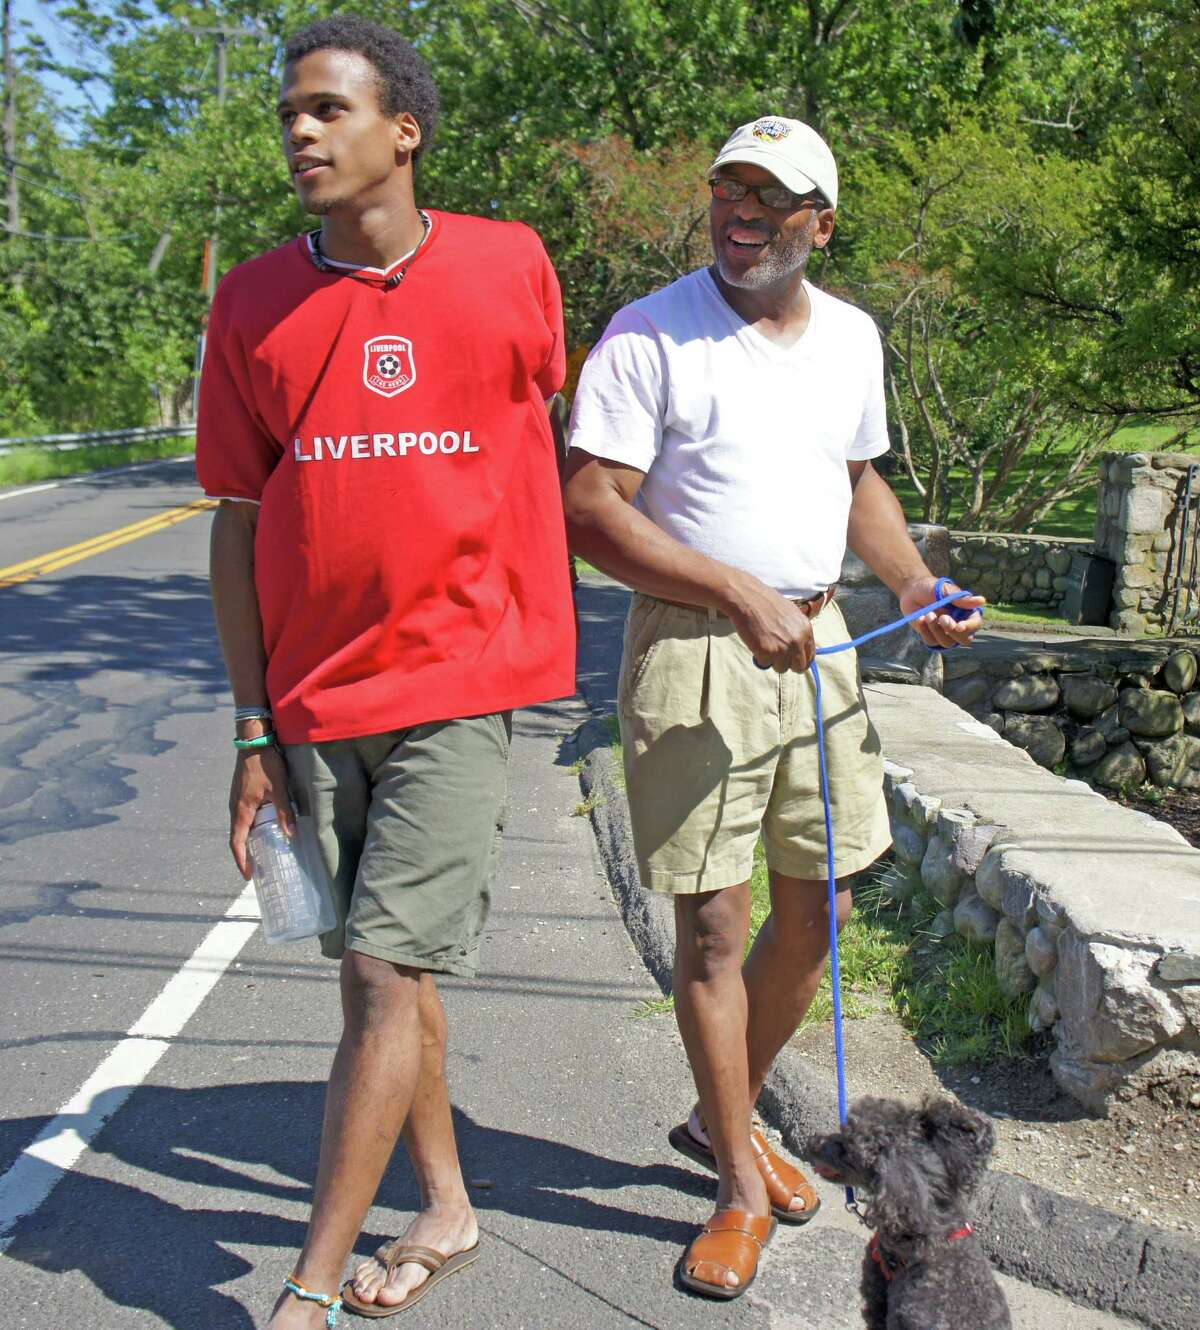 Dennis Ray, right, and his son, Raphael, take an afternoon walk past Harvey Weinstein's house on Beachside Avenue, ahead of the evening visit of President Barack Obama to Weinstein's home. Monday, Aug. 6, 2012/ Westport, CT